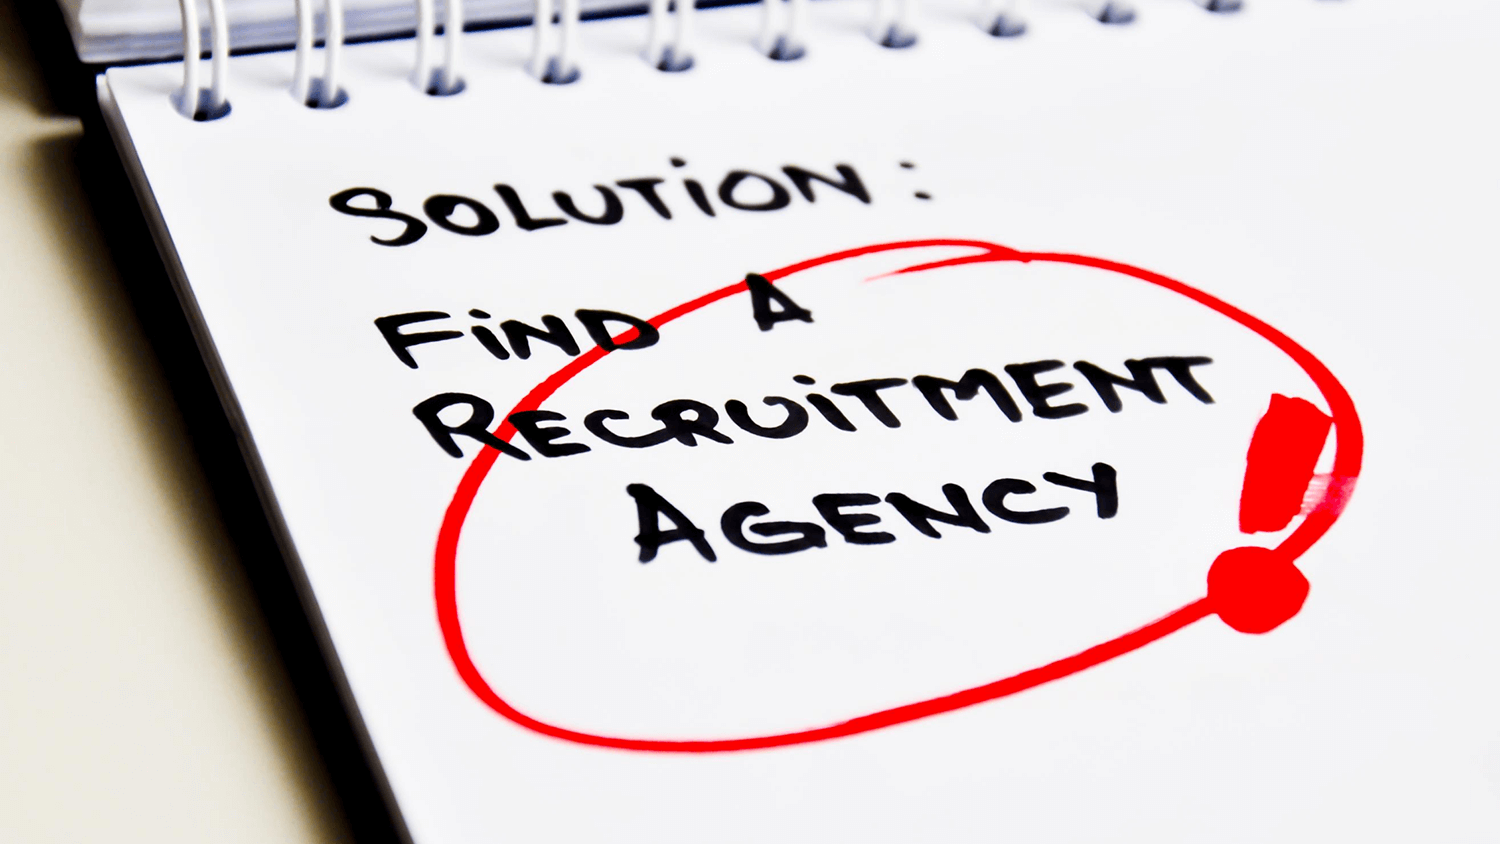 Top 10 Best Recruiting Firms in the Washington, DC Metro Area